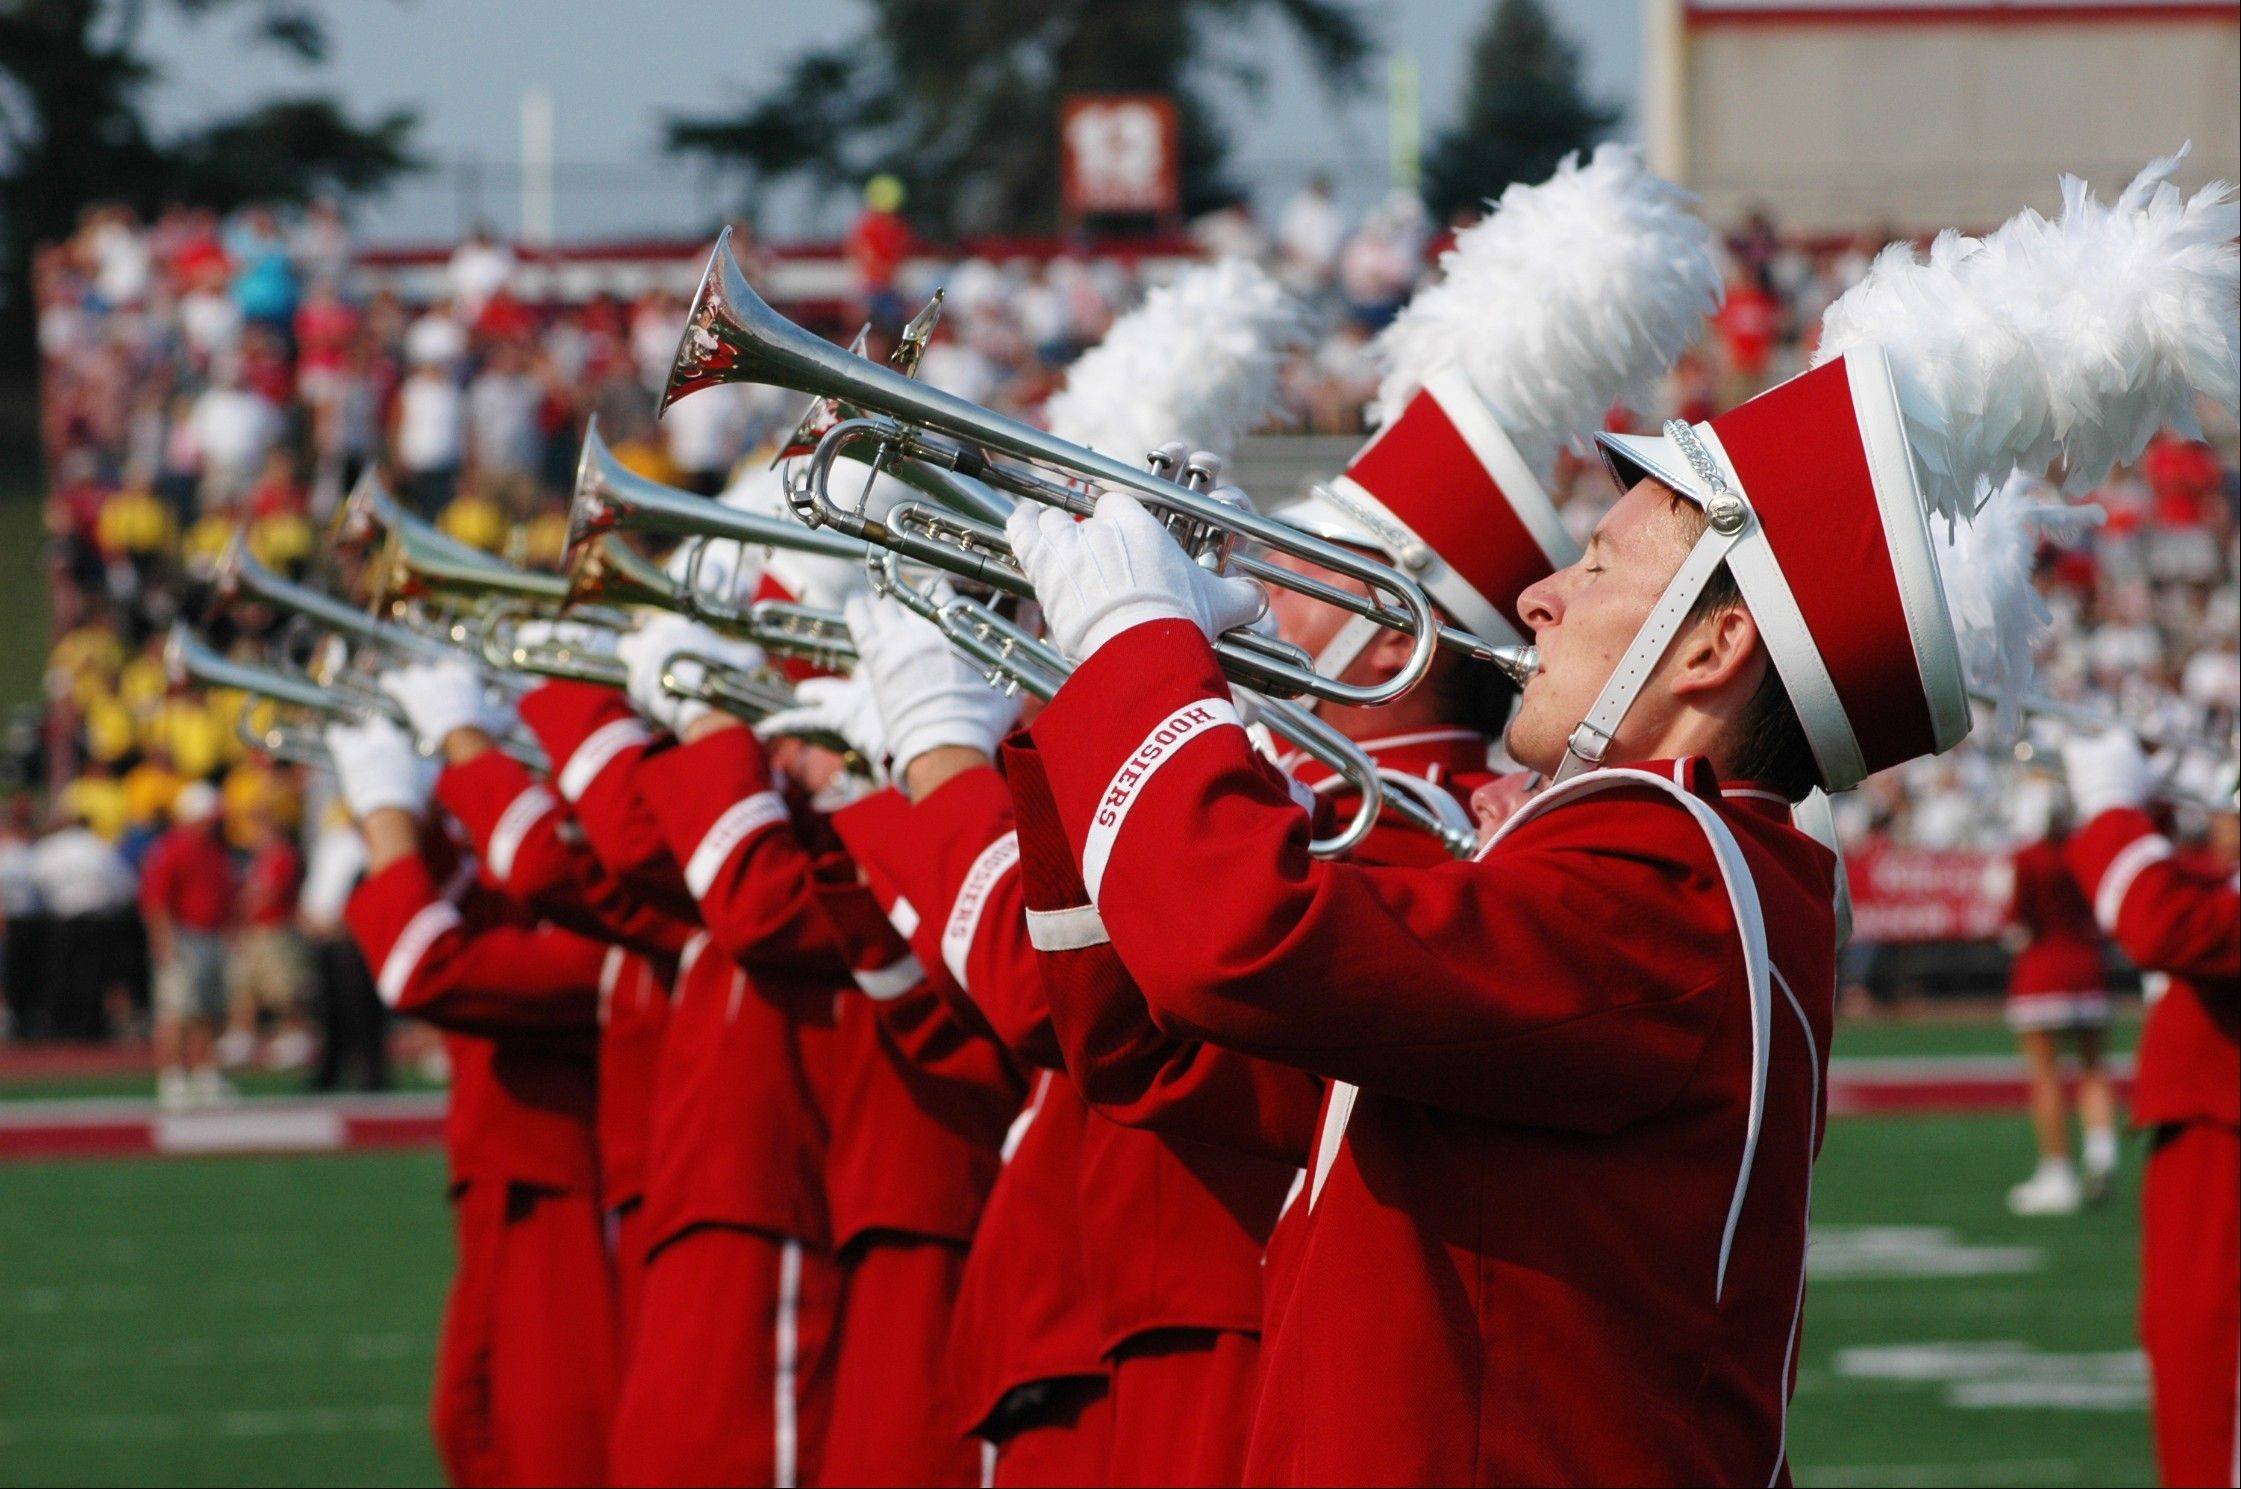 The Indiana University Marching Hundred, which actually features more than 300 musicians including Carol Stream's Tim Camper, will perform next month during the Super Bowl pregame show in Indianapolis.